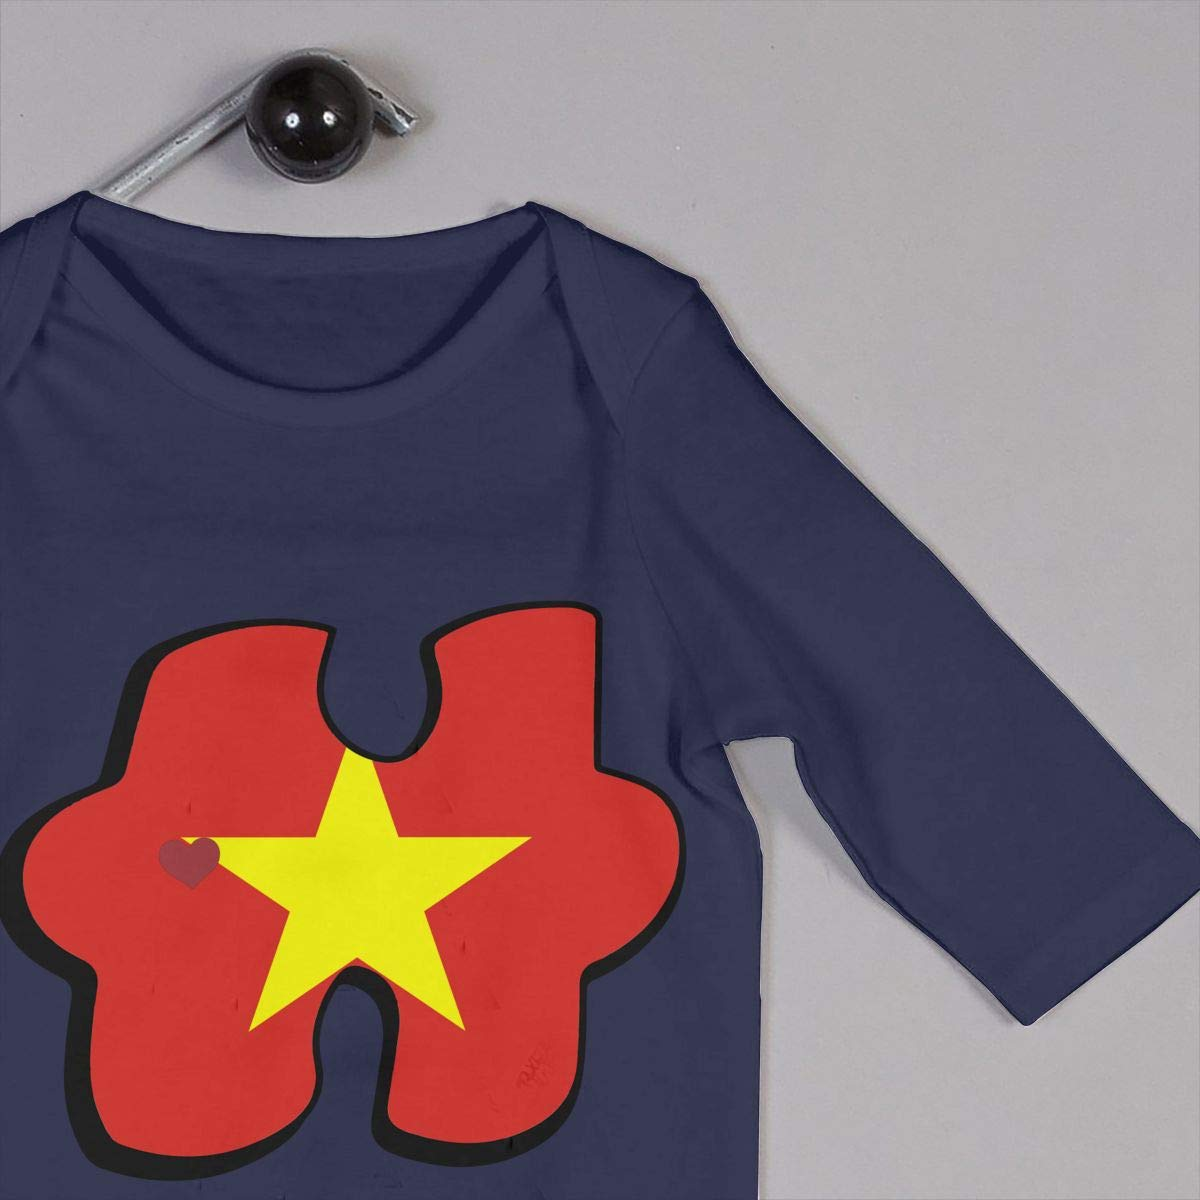 Mri-le1 Toddler Baby Boy Girl Bodysuits Autism Awareness Vietnam Flag Puzzle Baby Rompers